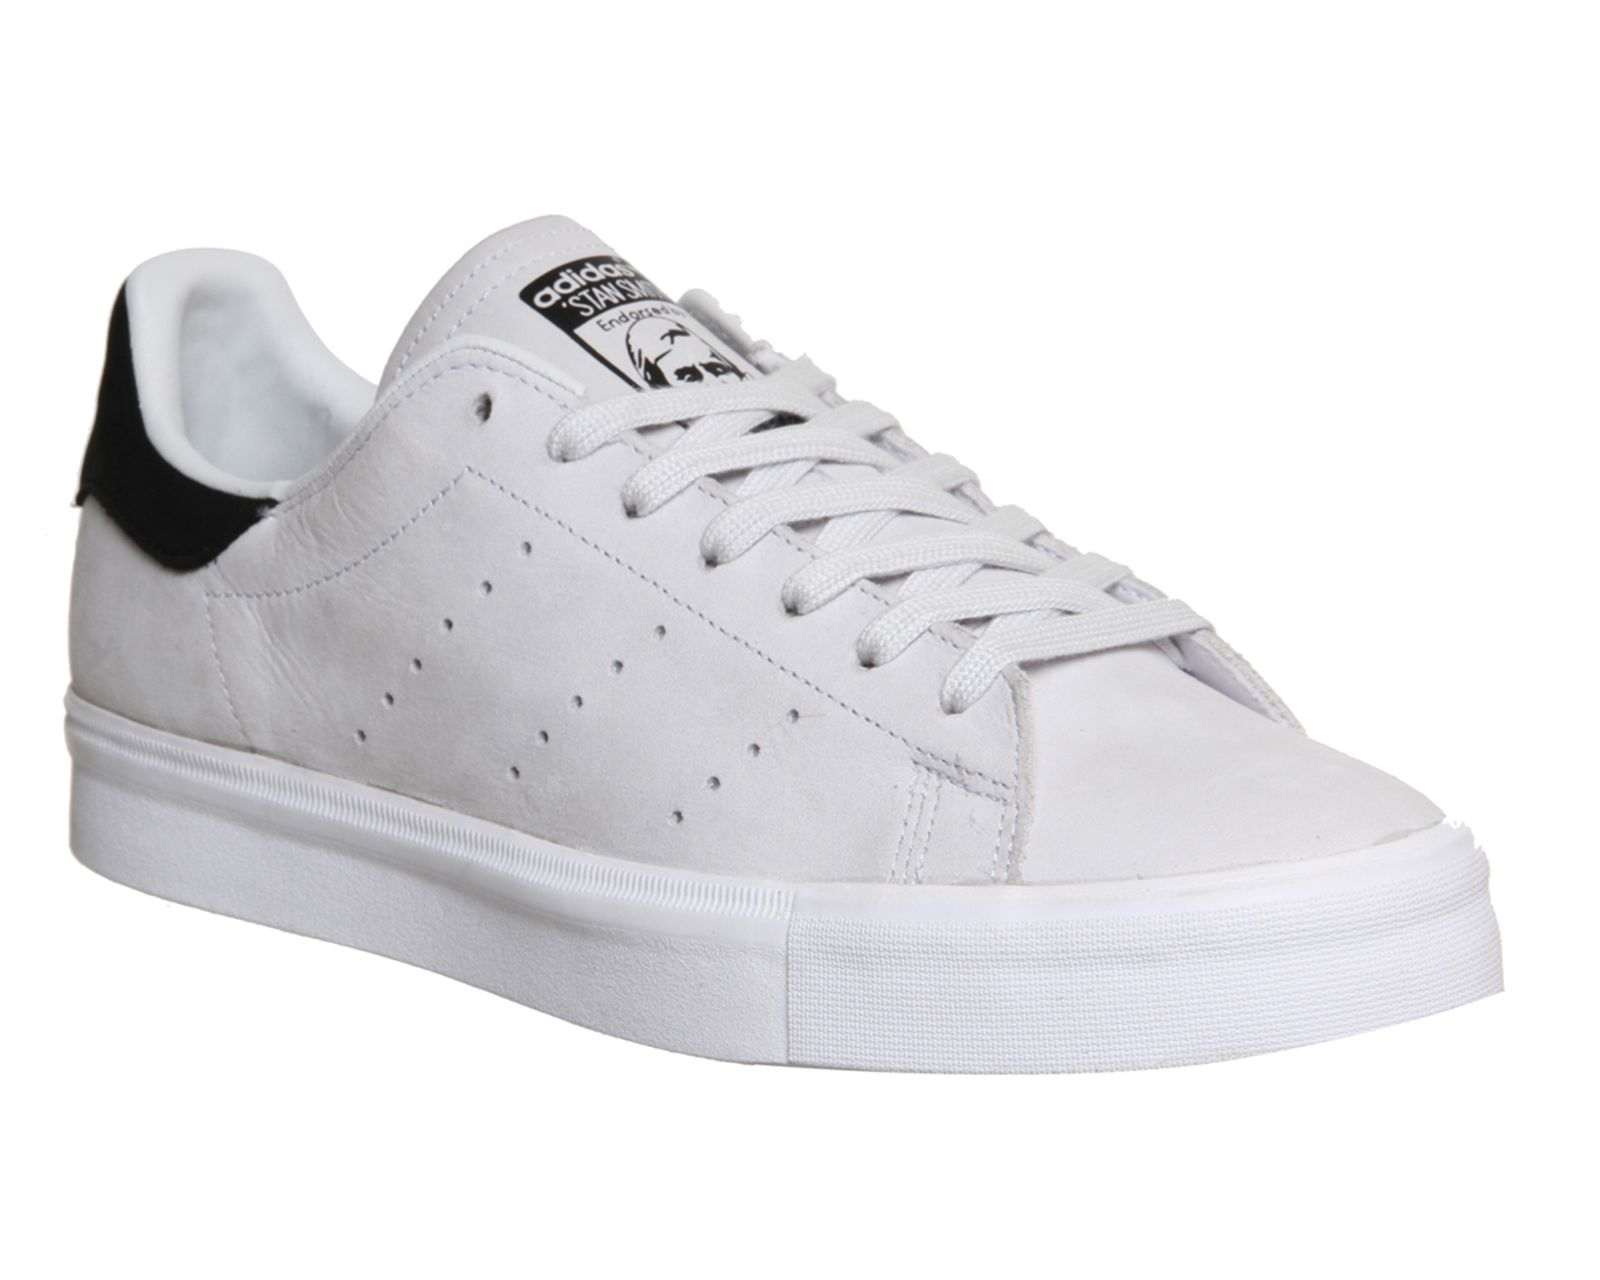 buymadesimple.com: Adidas Mens Stan Smith Vulc White Black Nubuck Trainers  Shoes, White